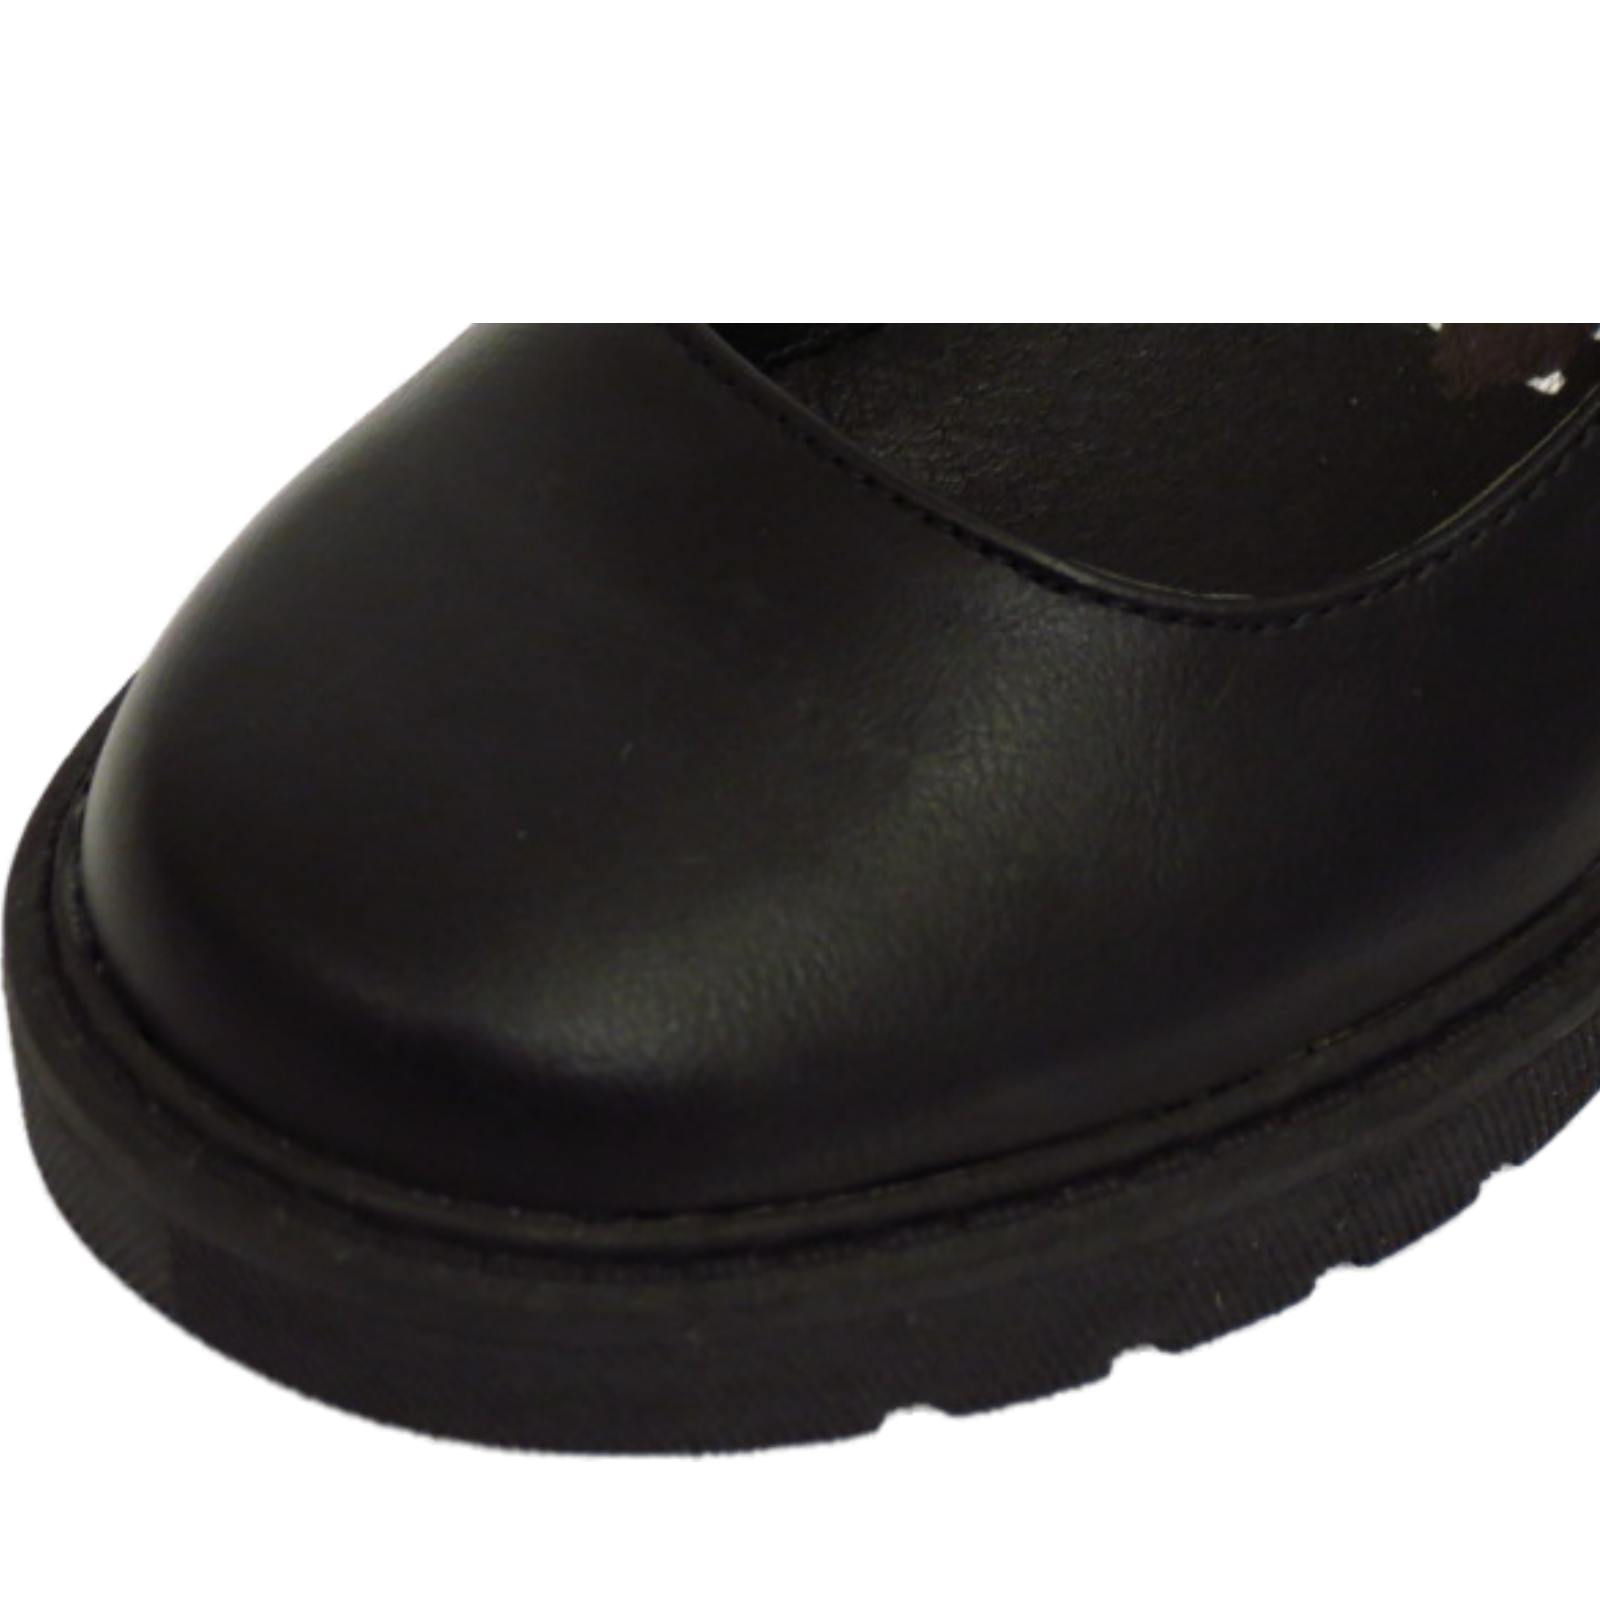 GIRLS-KIDS-CHILDRENS-BUCKLE-T-BAR-BLACK-SCHOOL-PUMPS-DOLLY-SMART-FLAT-SHOES-10-5 thumbnail 29